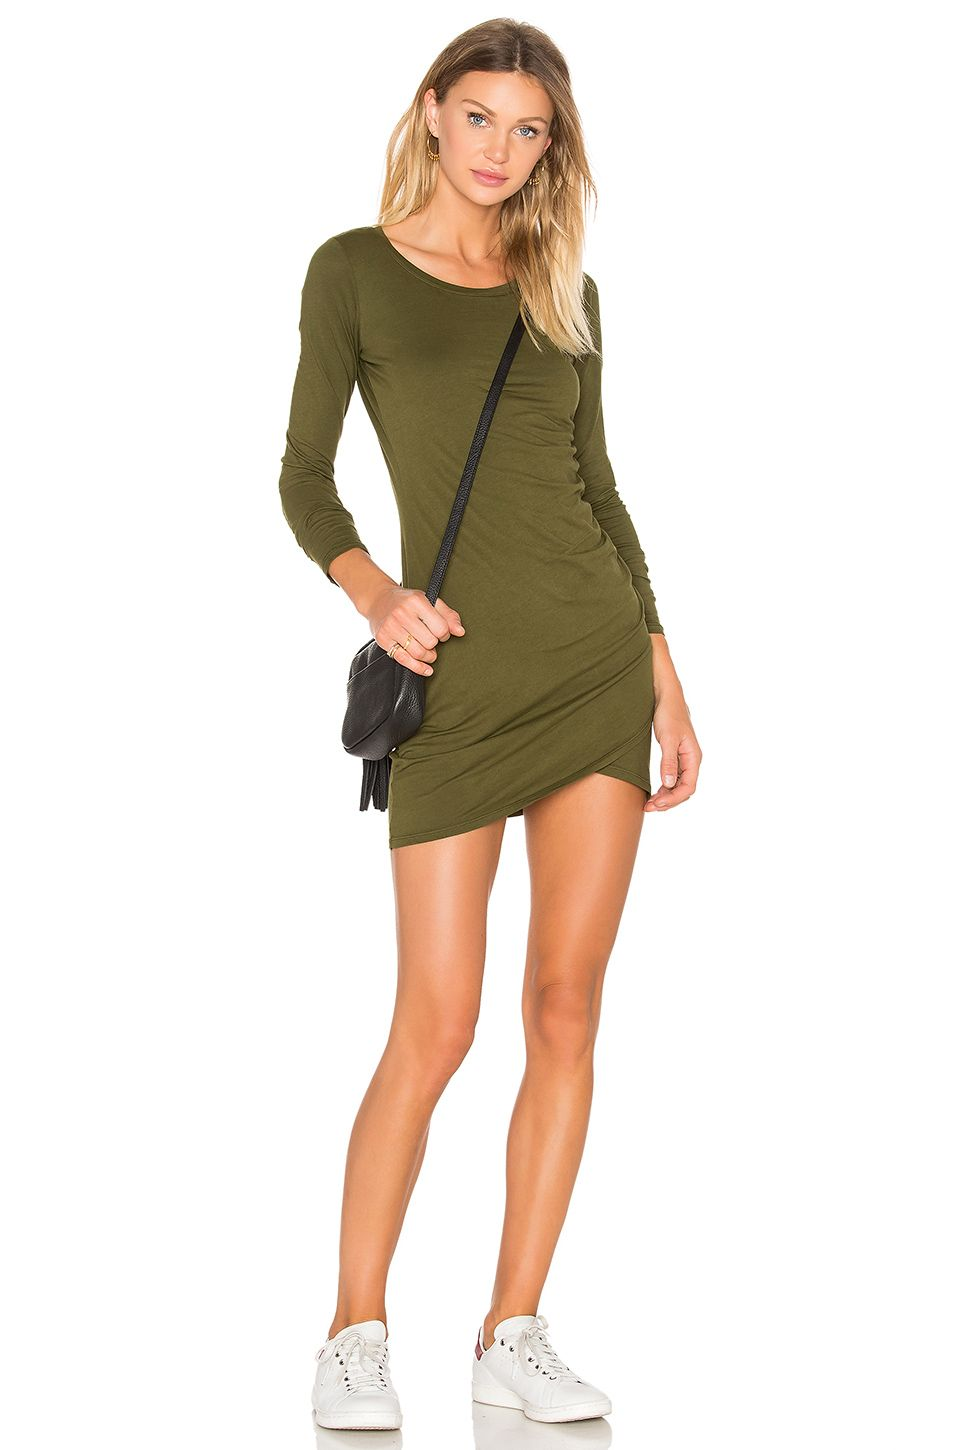 Supreme jersey long sleeve ruched mini dress chartreuse bobi